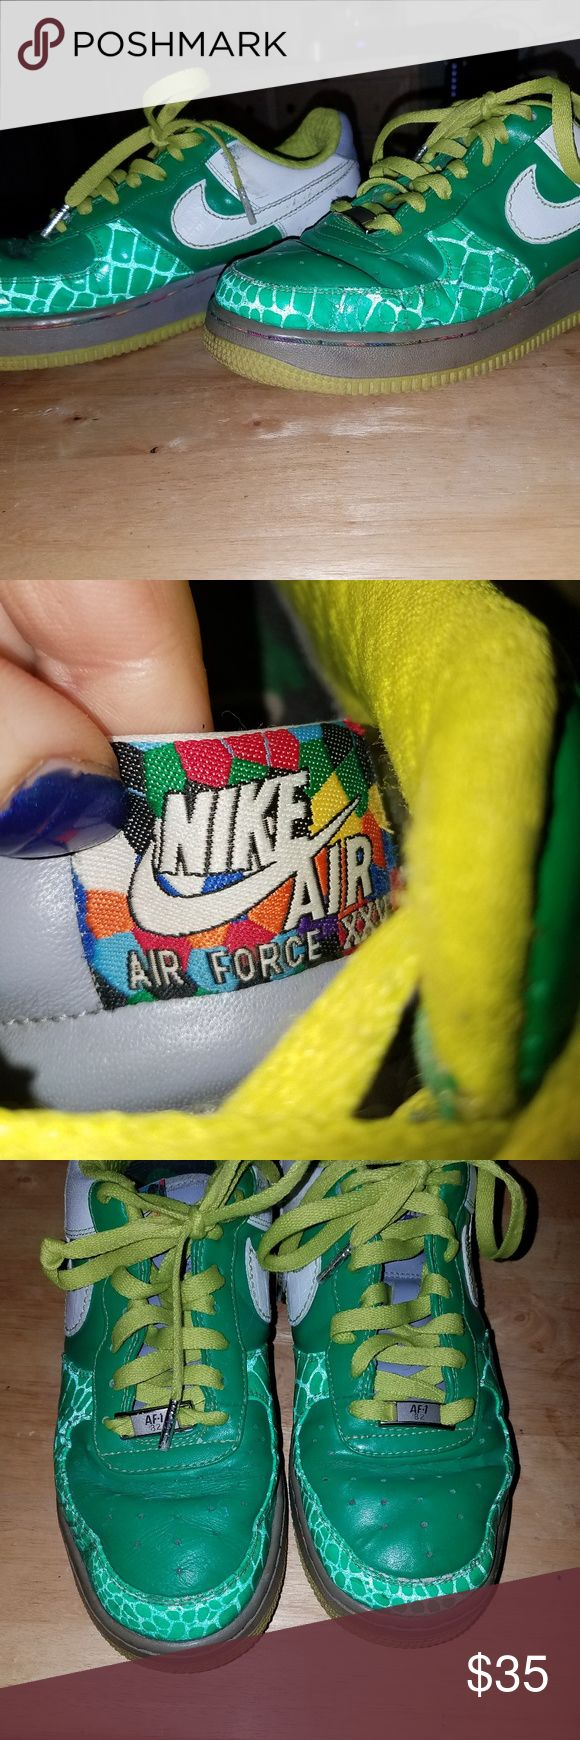 """Vintage Nike AF-1 S. Bronx 82"""" Vintage Nike AF-1 S. Bronx 82""""  6.5 Youth  Special Green, Lime Grn and white Nike Nike Shoes Sneakers"""